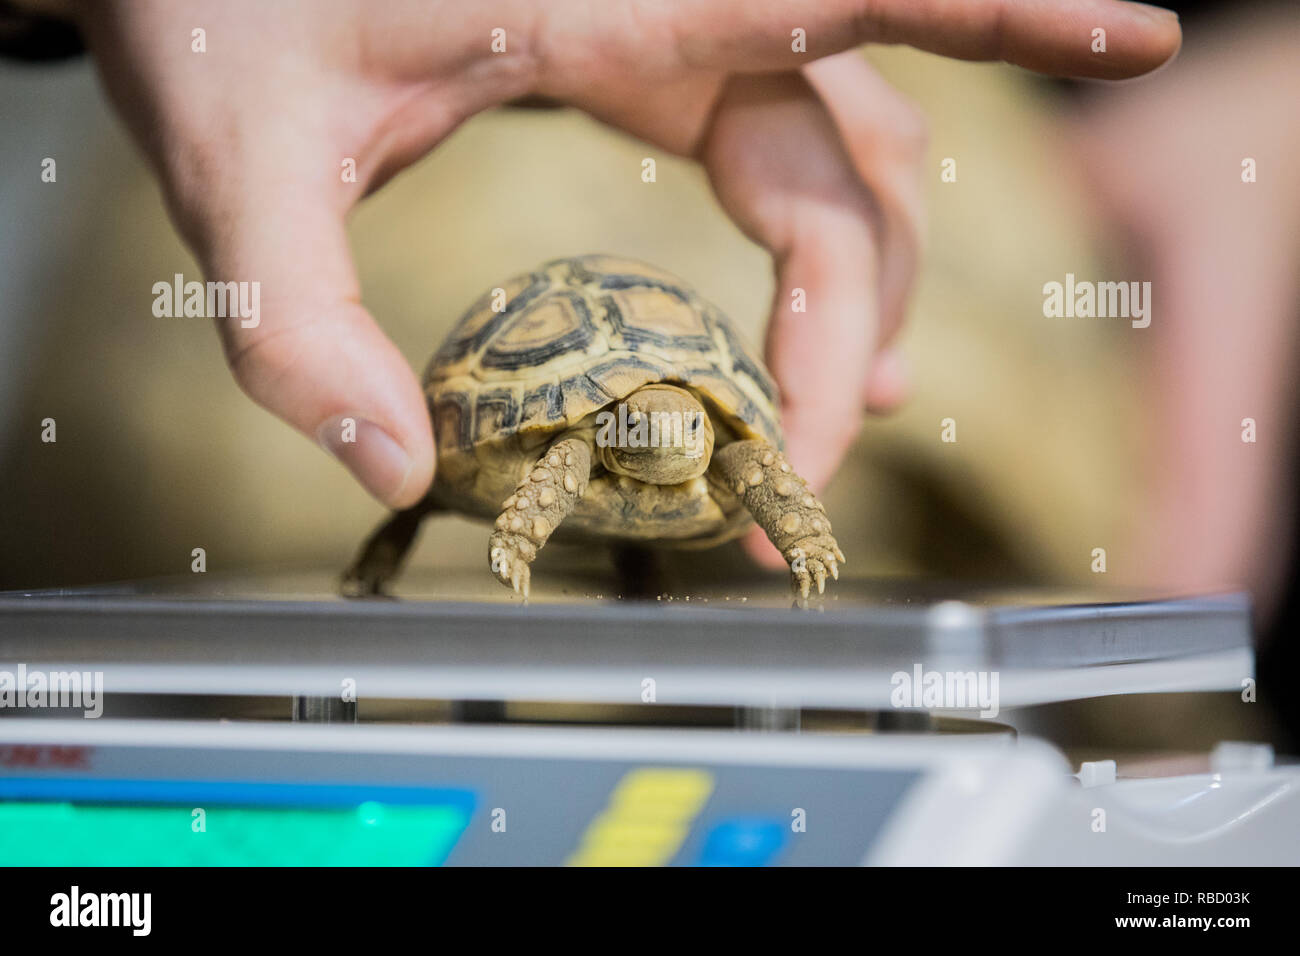 Duisburg, Germany. 09th Jan, 2019. A small panther turtle sits on a scale during an inventory at Duisburg Zoo. Credit: Rolf Vennenbernd/dpa/Alamy Live News - Stock Image